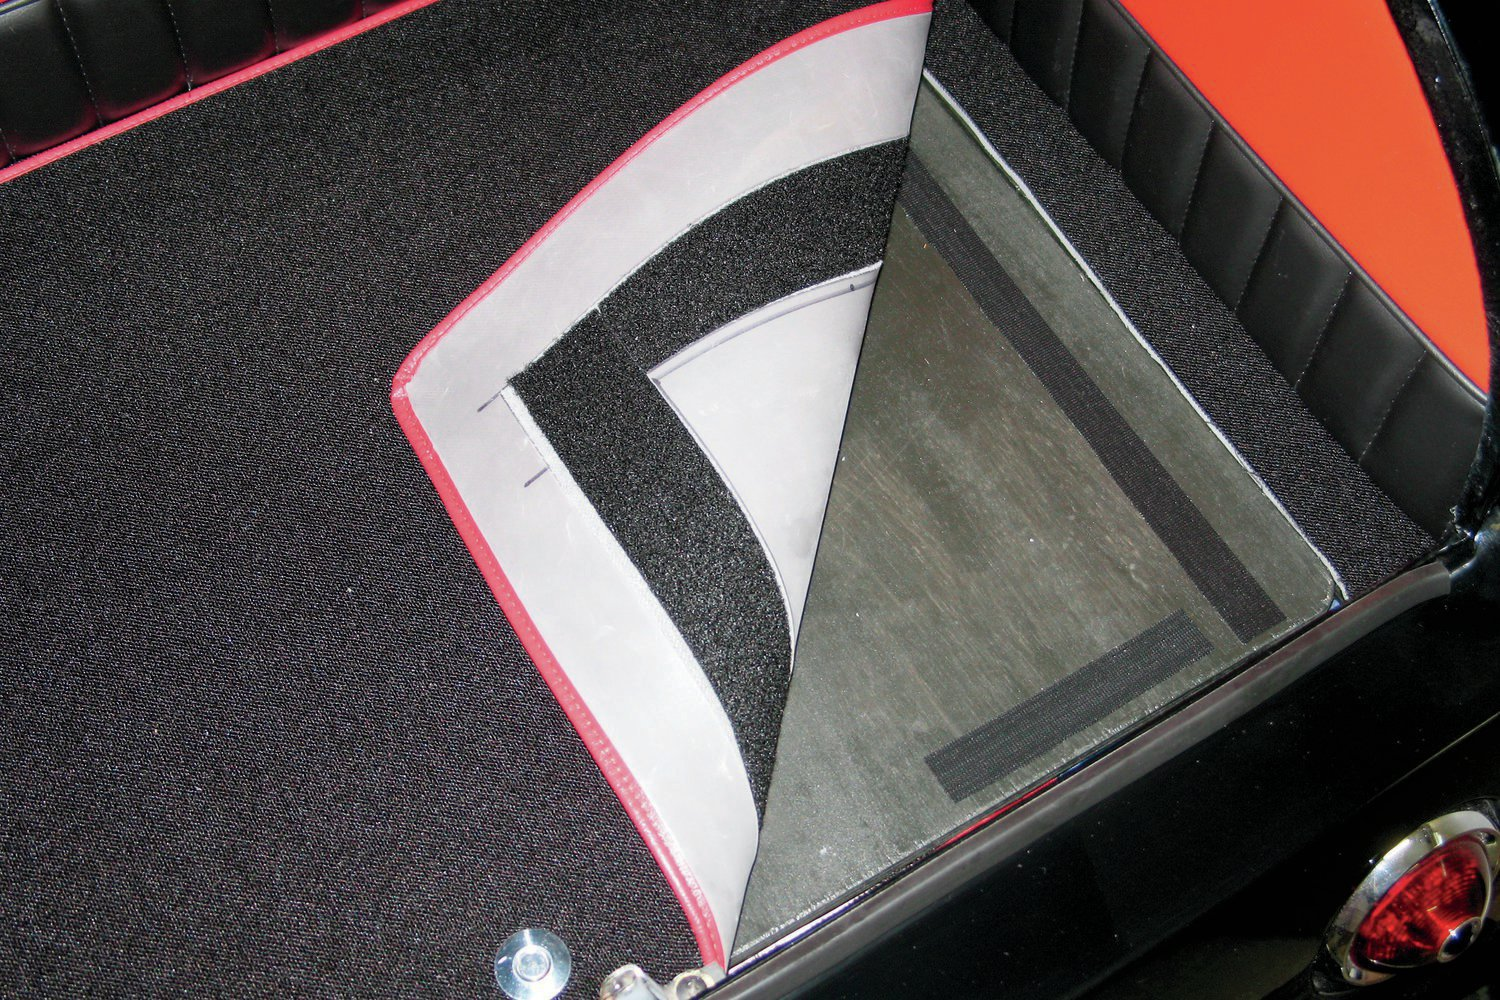 Velcro was attached to the false floor door and the carpet that would cover the door. This method allows you to move the carpet around and to remove it for cleaning or for easy replacement should something go really wrong down the road. Note how the carpet on the door overlaps the false floor edge carpet.